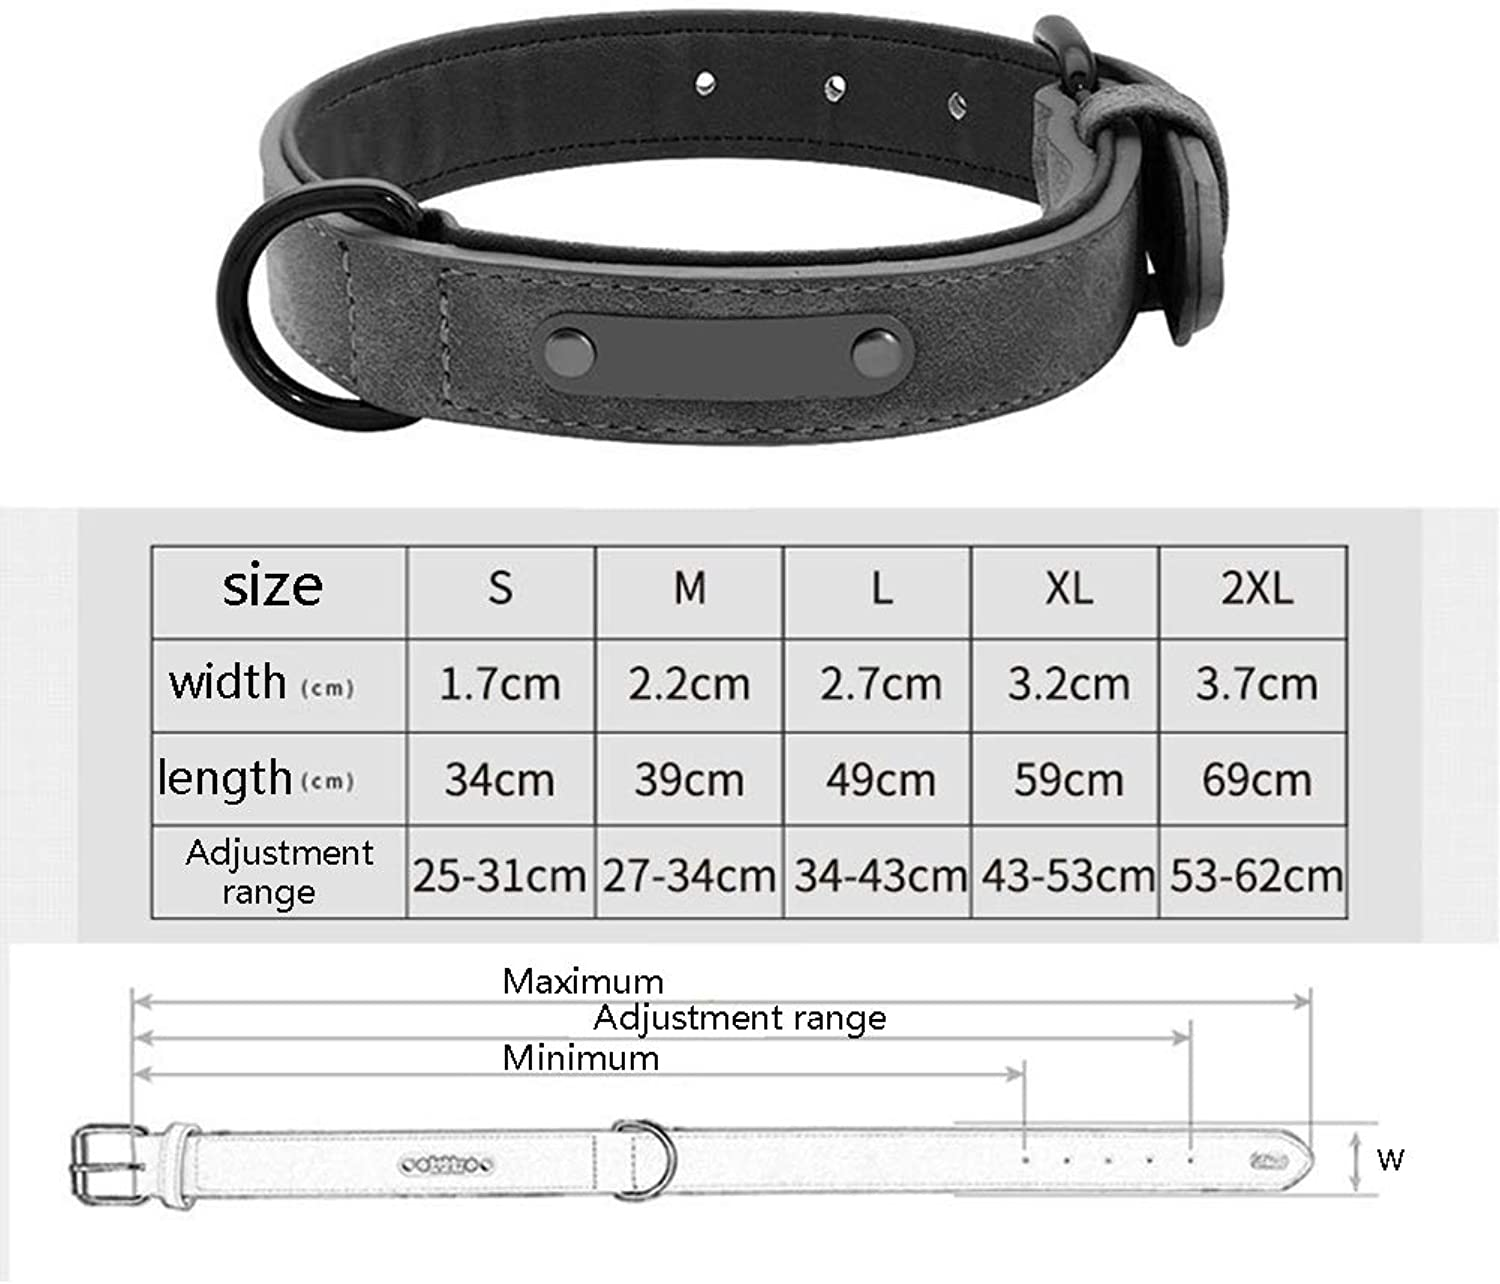 Fashion Leather Soft&Cozy Adjustable Padded Pet Collar Set,Create Your Own Name, Adjustable Dog Collar + Pet Leads 2562cm (color    5, Size   L)